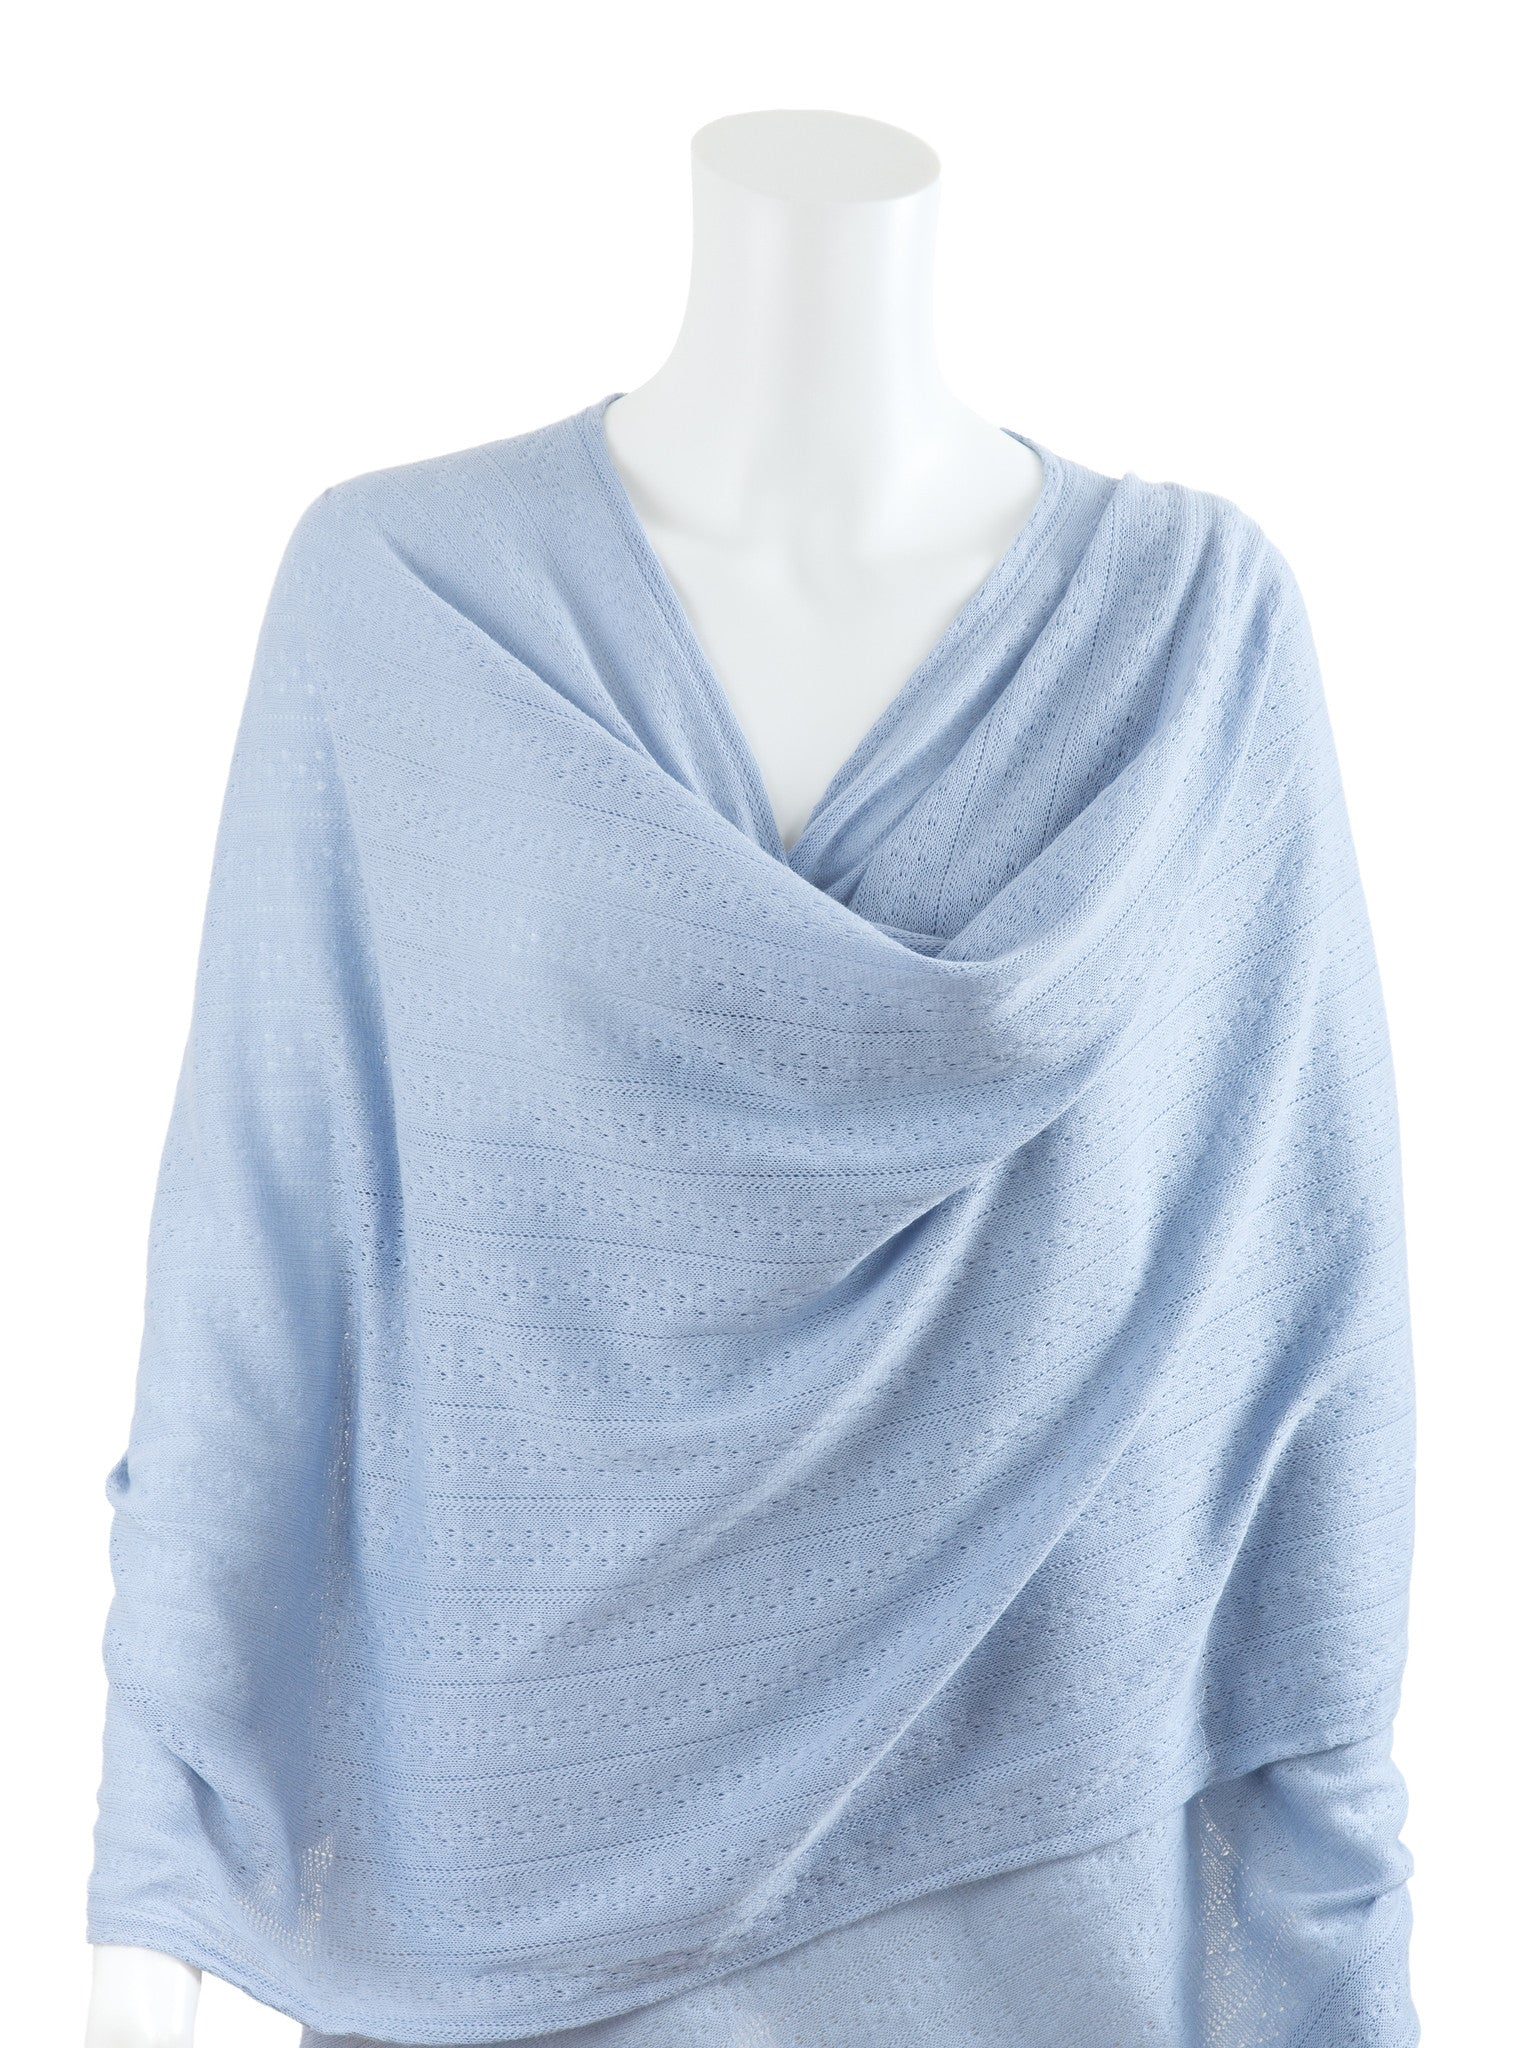 Blue Textured Knit Nursing Cover